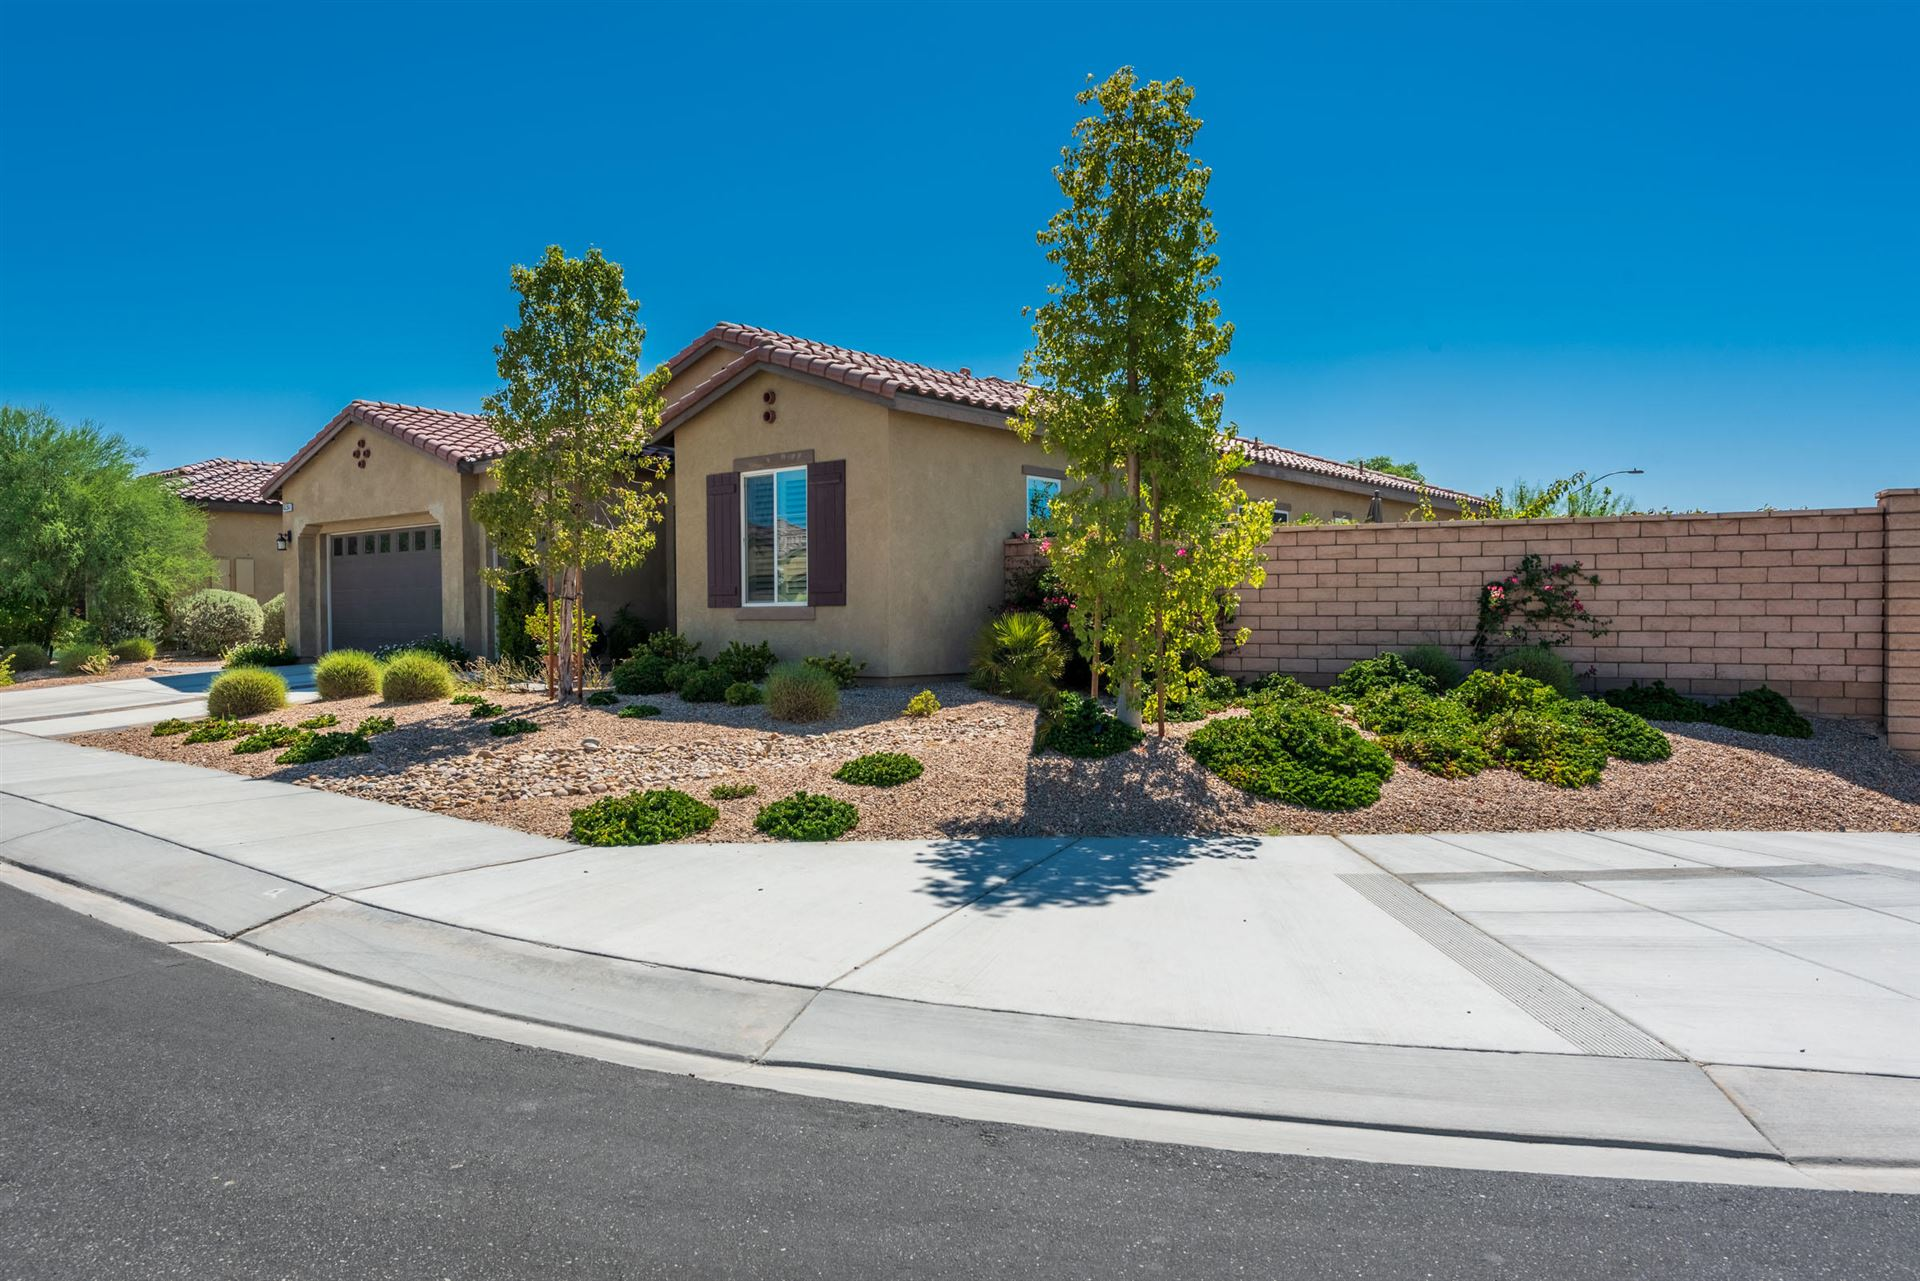 43264 Arolo Way, Indio, CA 92203 - MLS#: 219046418